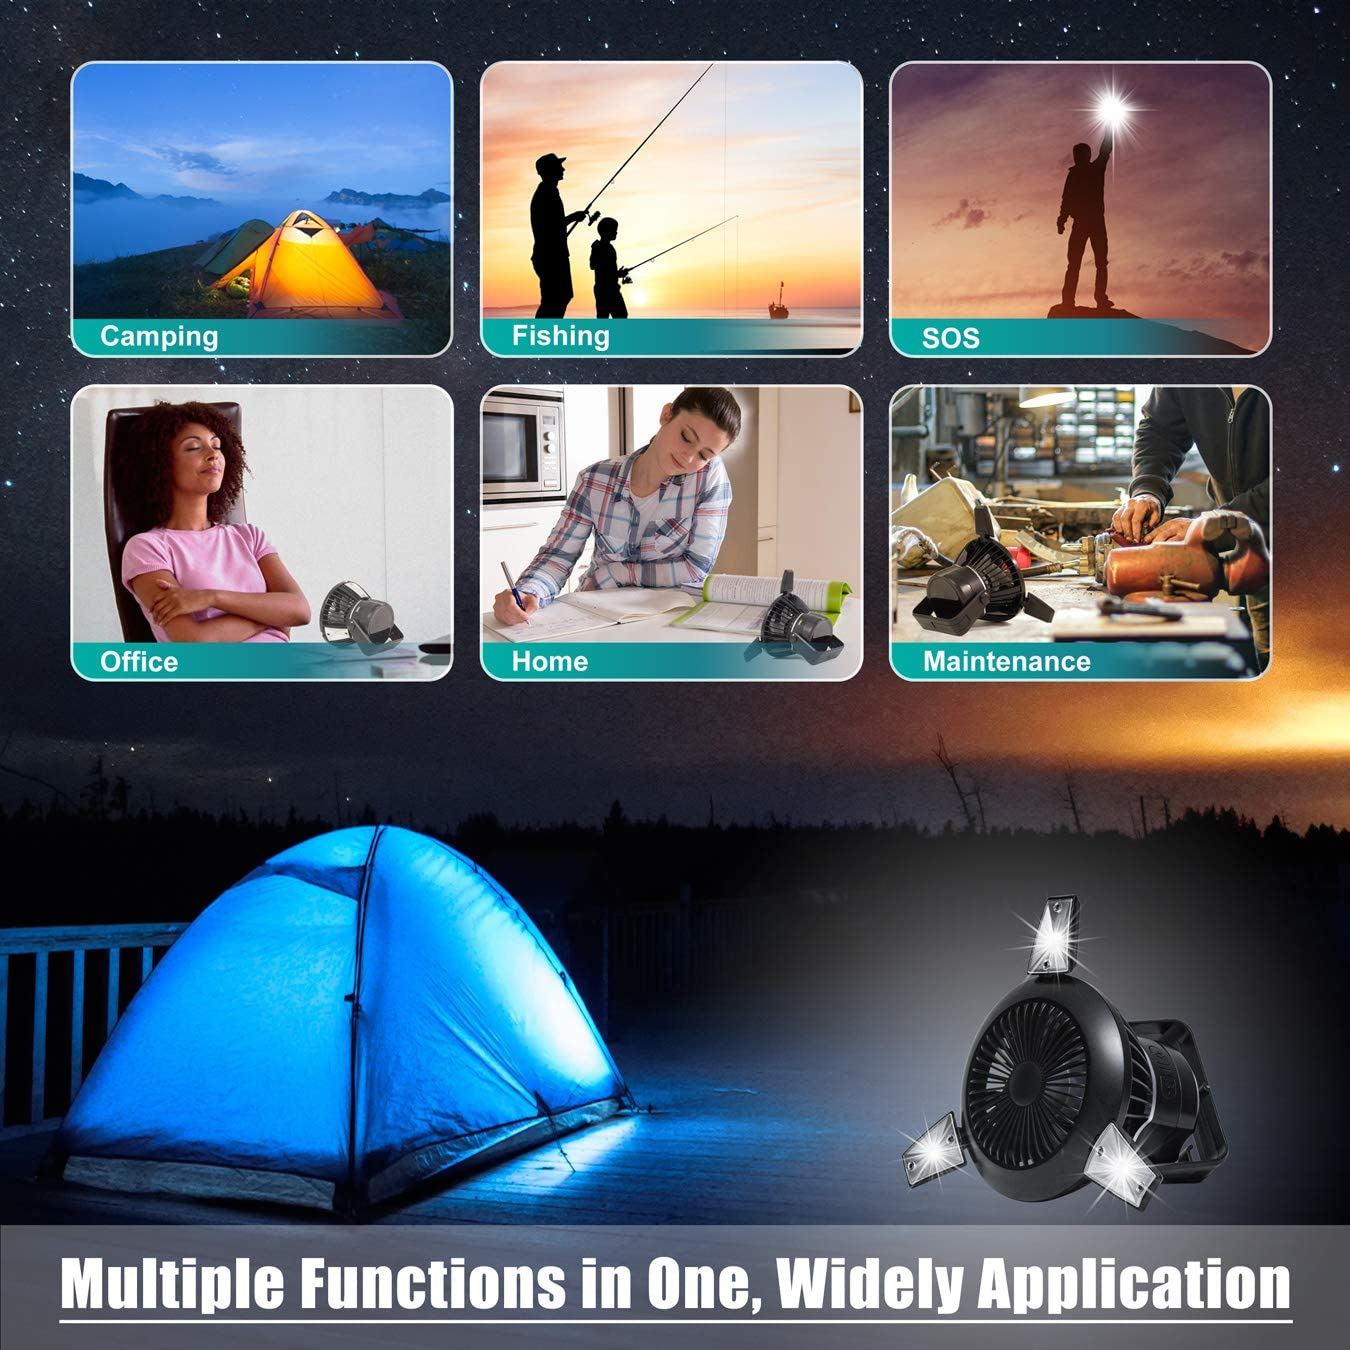 Portable Tent Fan with Hanging Hook Tent 4000mAh, 40 Hours Max Working Time BUSYPIGGY Solar Camping Fan with LED Lantern Car Emergency Outages Office Rechargeable USB Desk Fan for Home